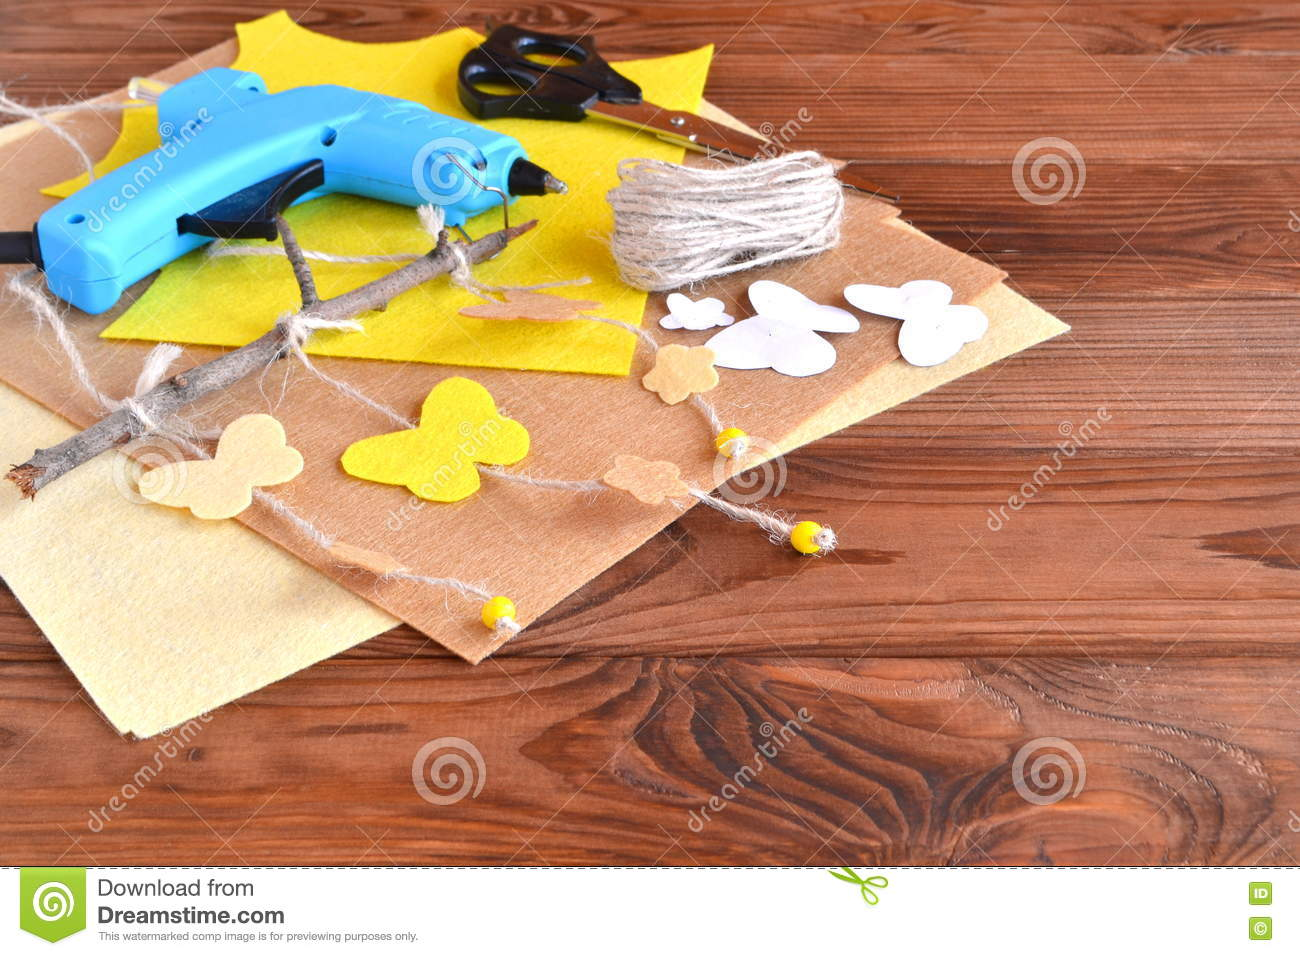 Scissors Hot Glue Gun Sheets Of Felt Decorative Pendant With Felt Butterflies And Flowers Wooden Background Stock Photo Image Of Interior Glue 74366276